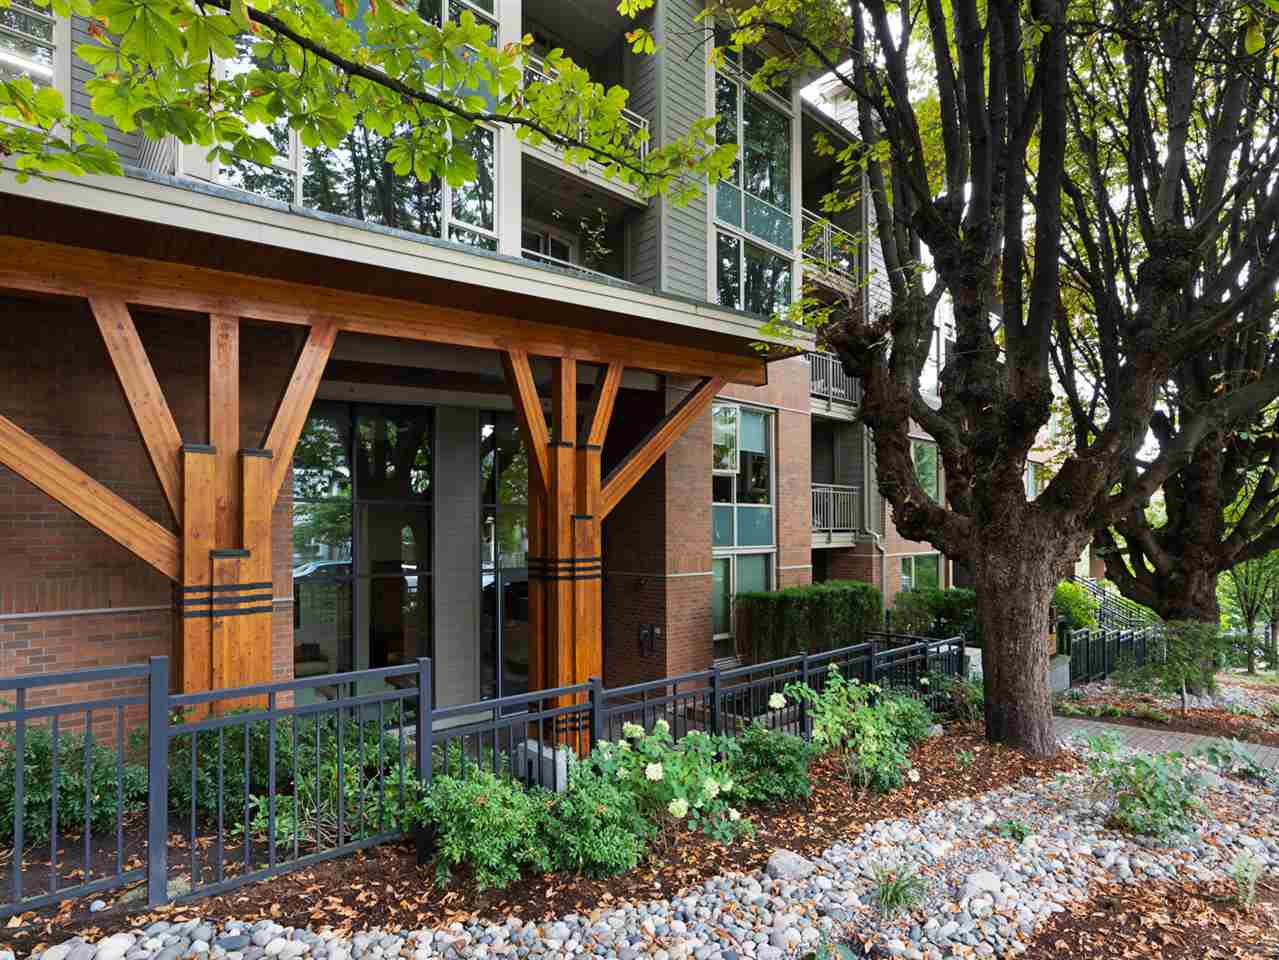 102 159 W 22ND STREET - Central Lonsdale Apartment/Condo for sale, 1 Bedroom (R2502448) - #13